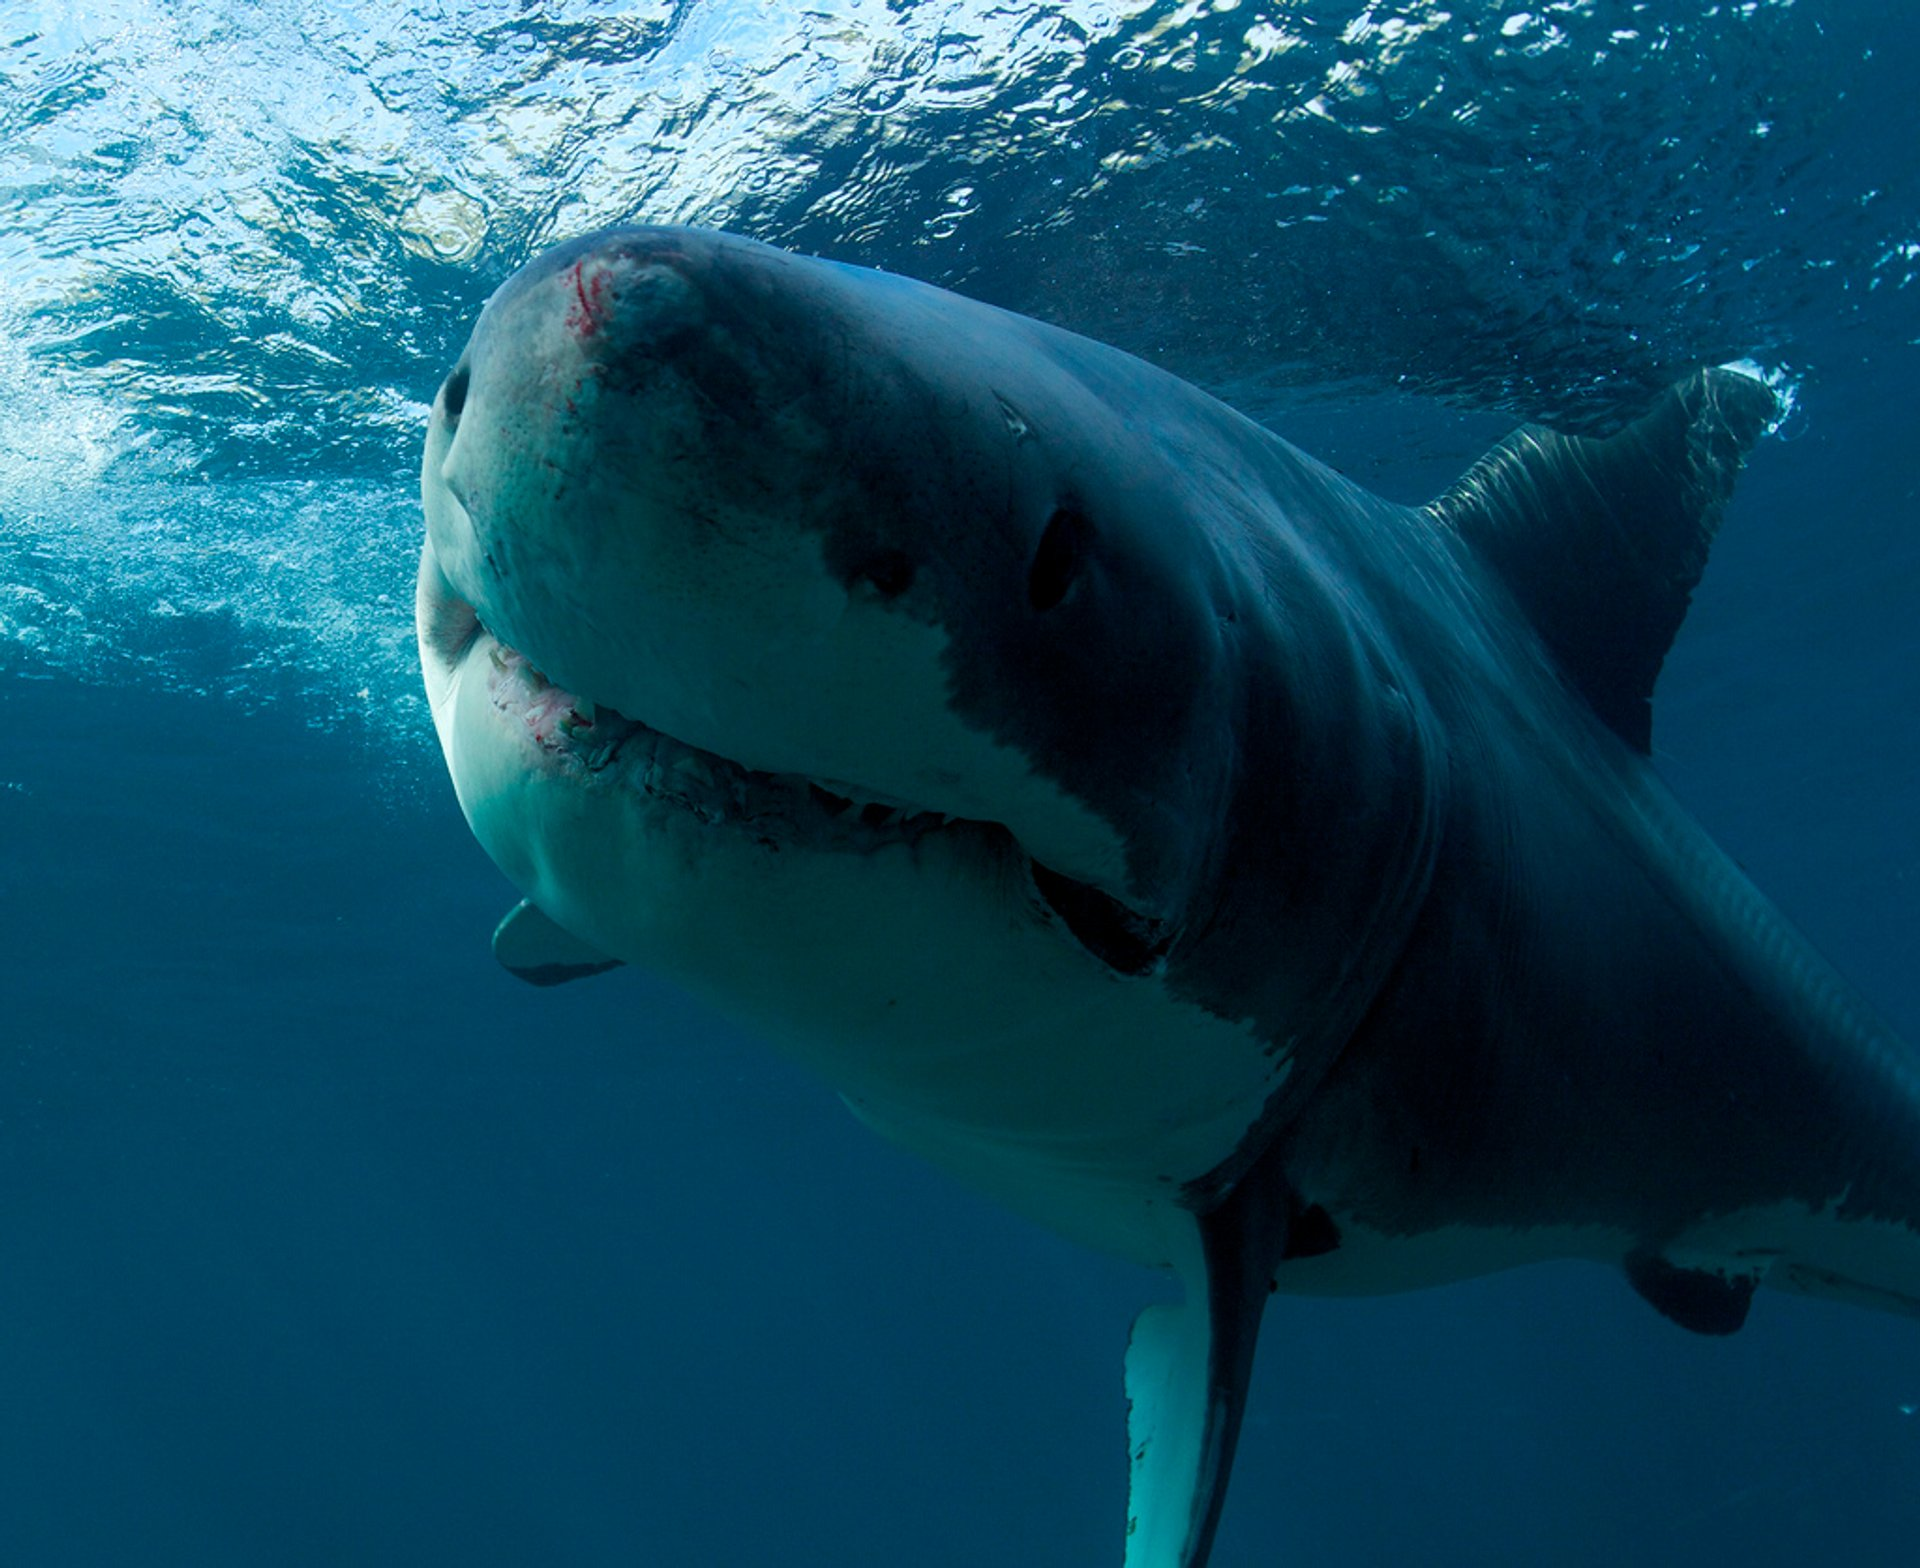 Great White Shark Cage Diving in New Zealand - Best Season 2019